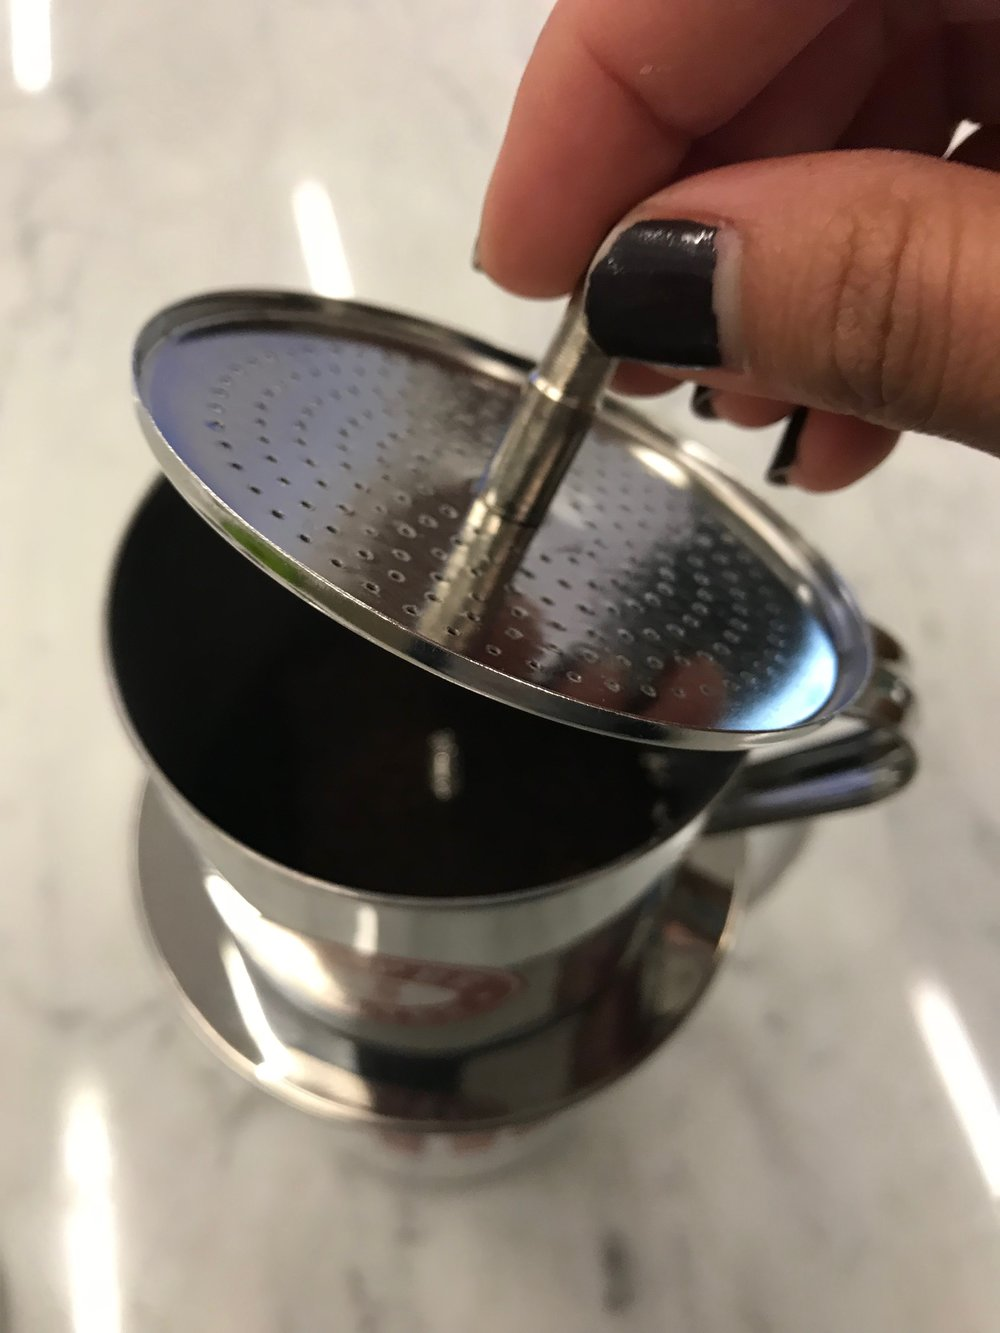 The Monday Muse Vietnamese Style Coffee Smoosh Life Filter Kopi However After You Pack It Down Should Unscrew Your 1 2 Turns To Leave A Bit Of Room Since Will Expand When Gets Wet